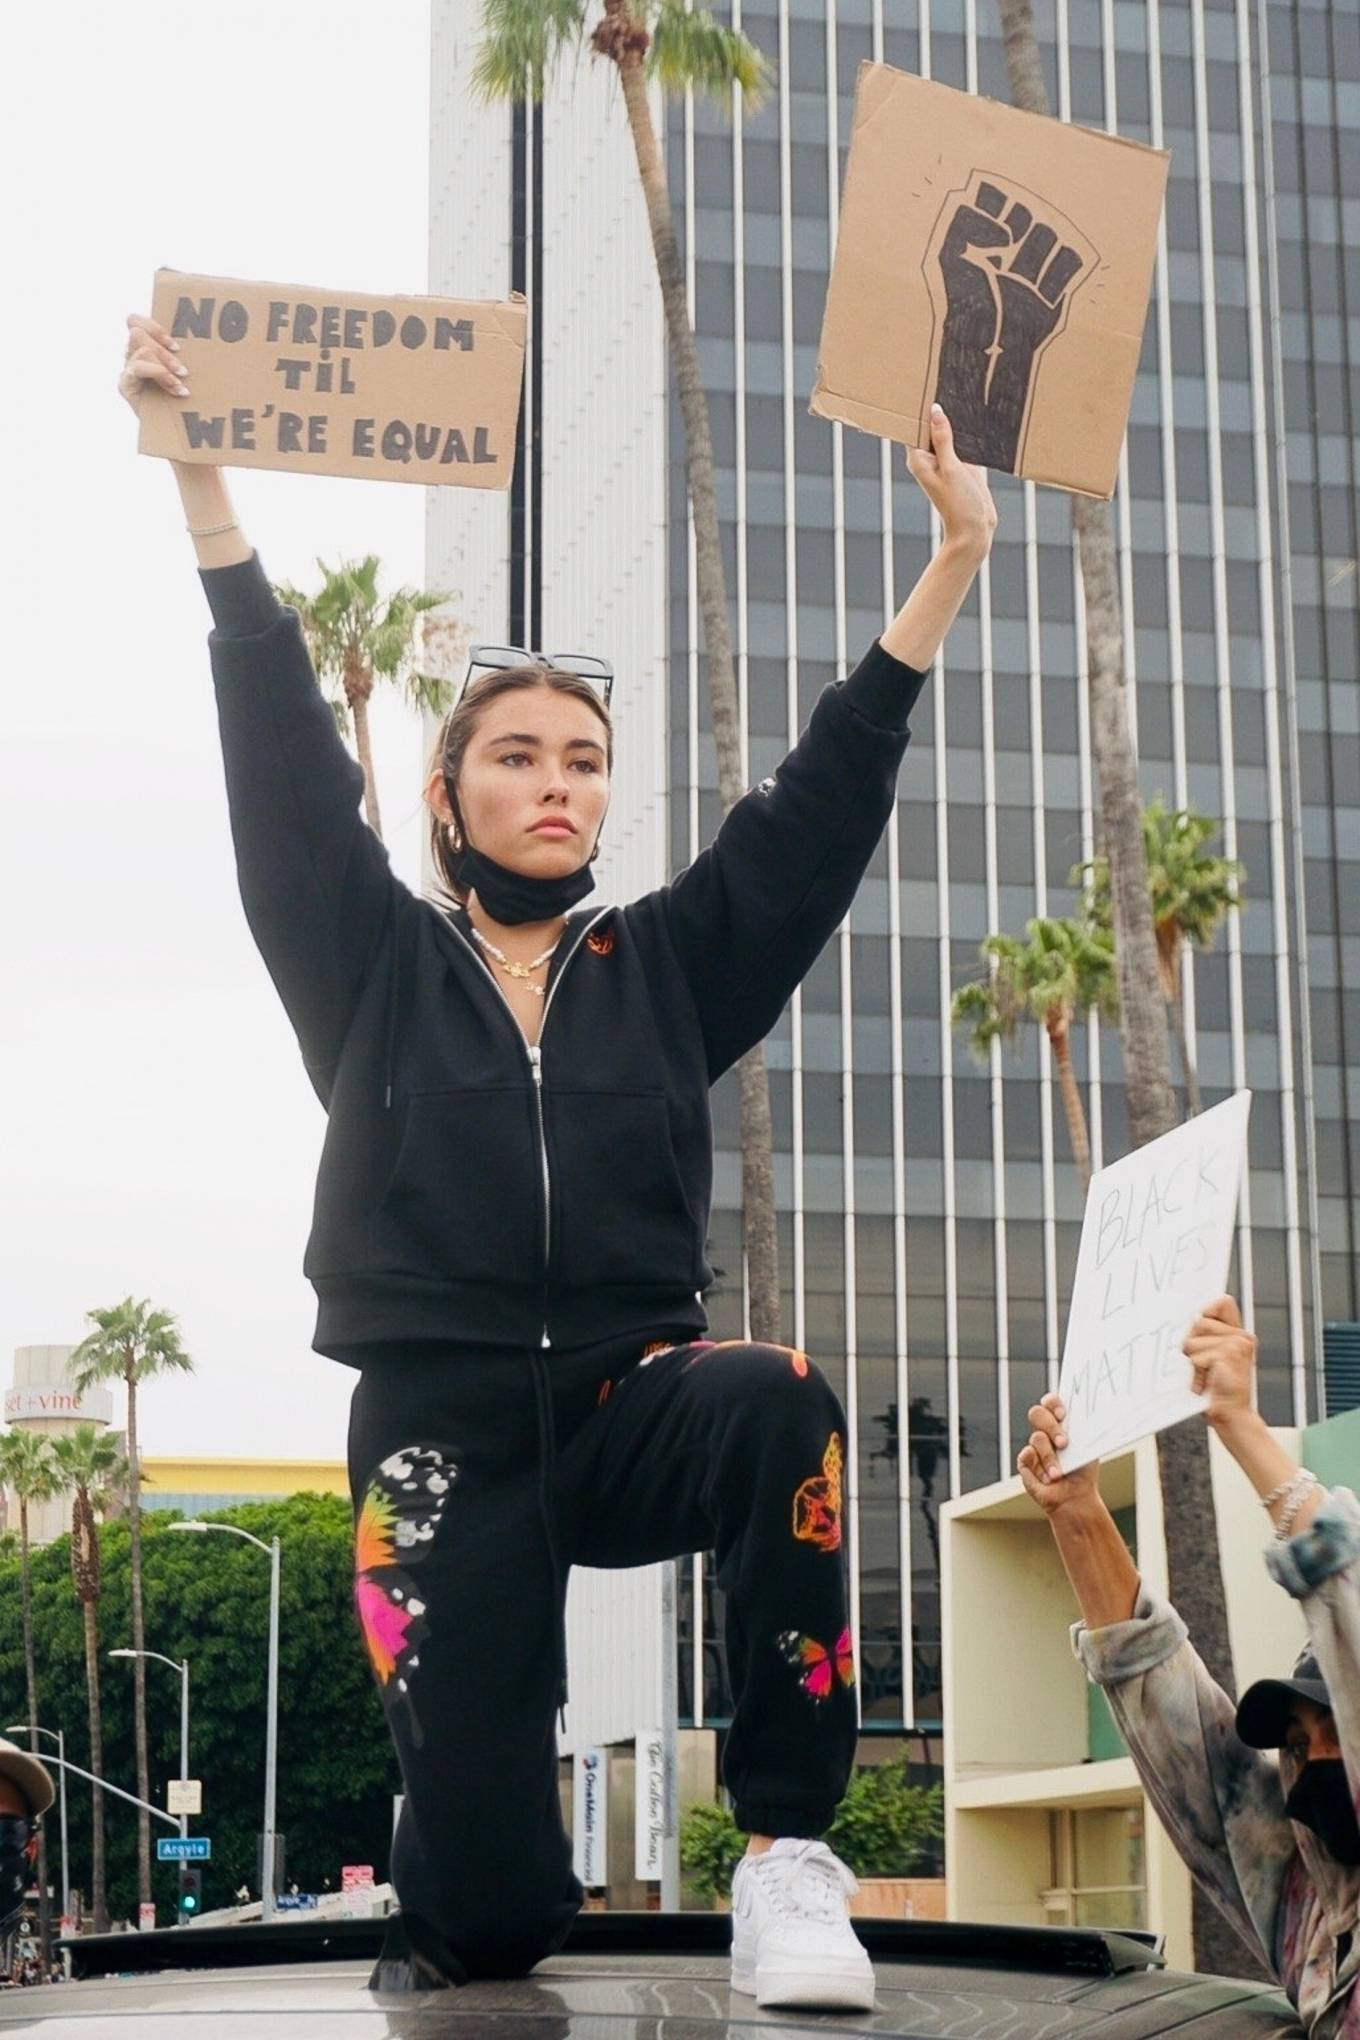 Madison Beer - Joins the protests against the killing of George Floyd in Los Angeles